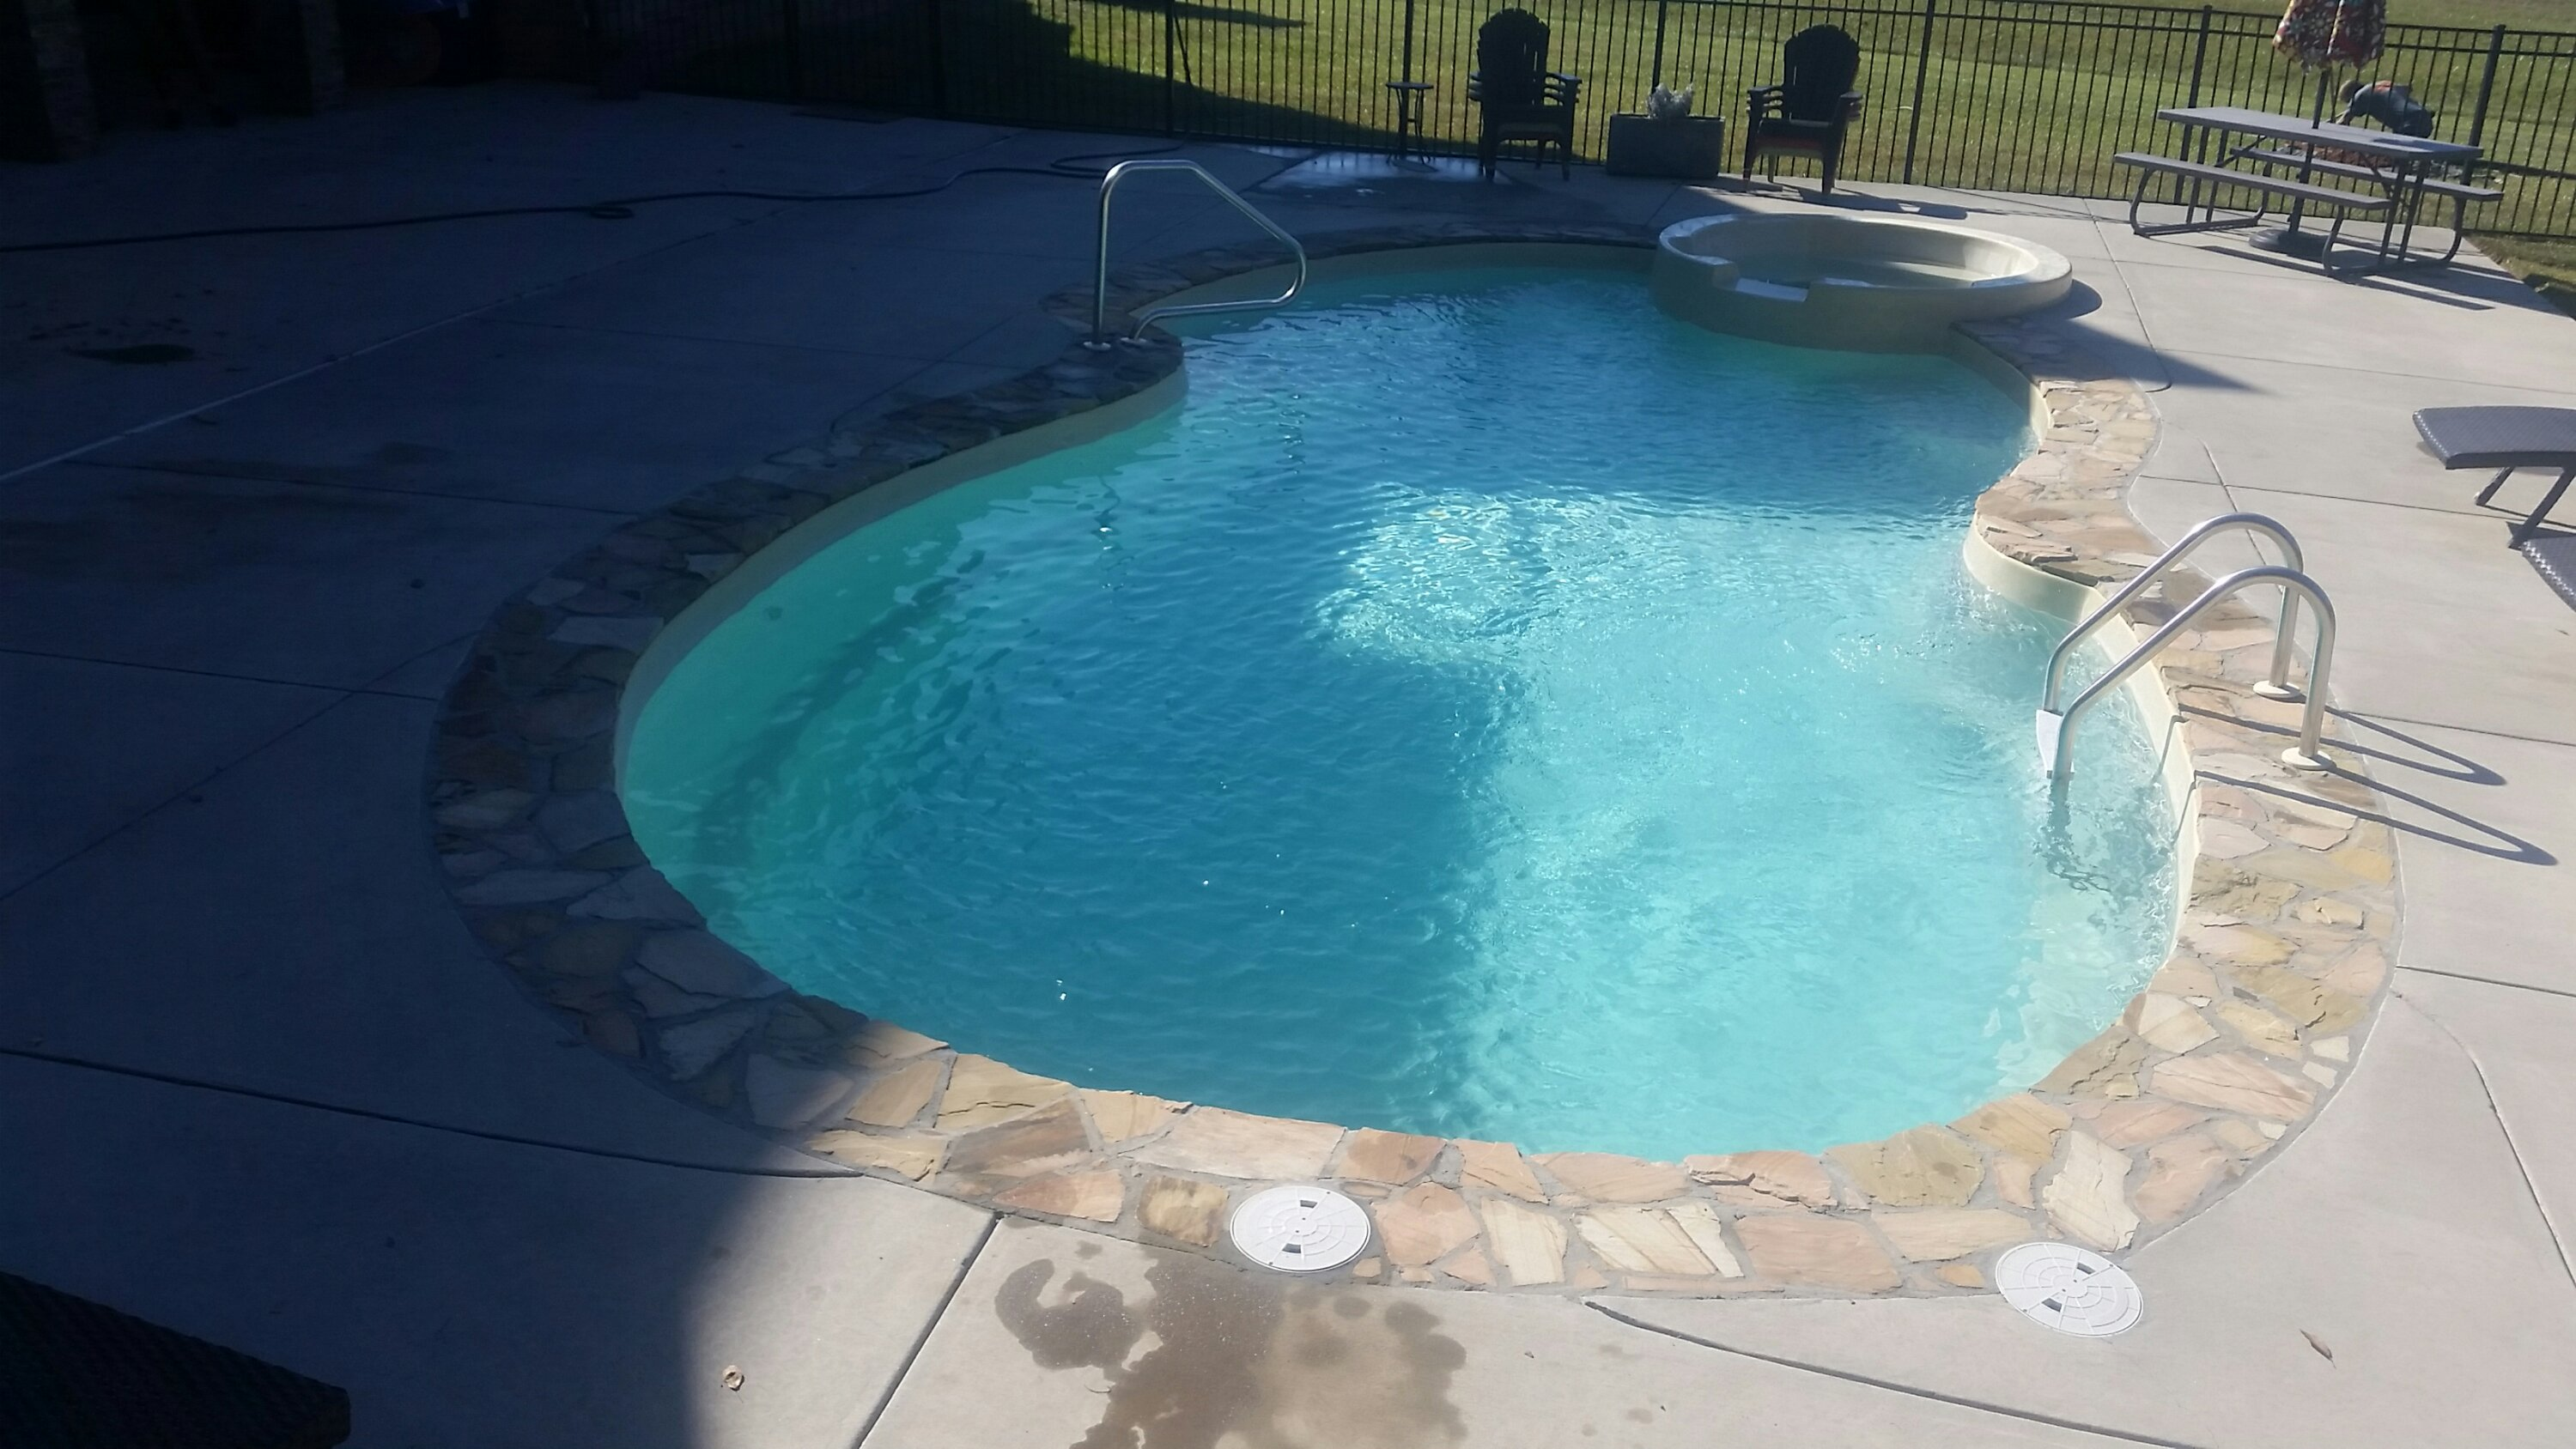 How To Repair A Swimming Pool Leak Nps Leak Detection